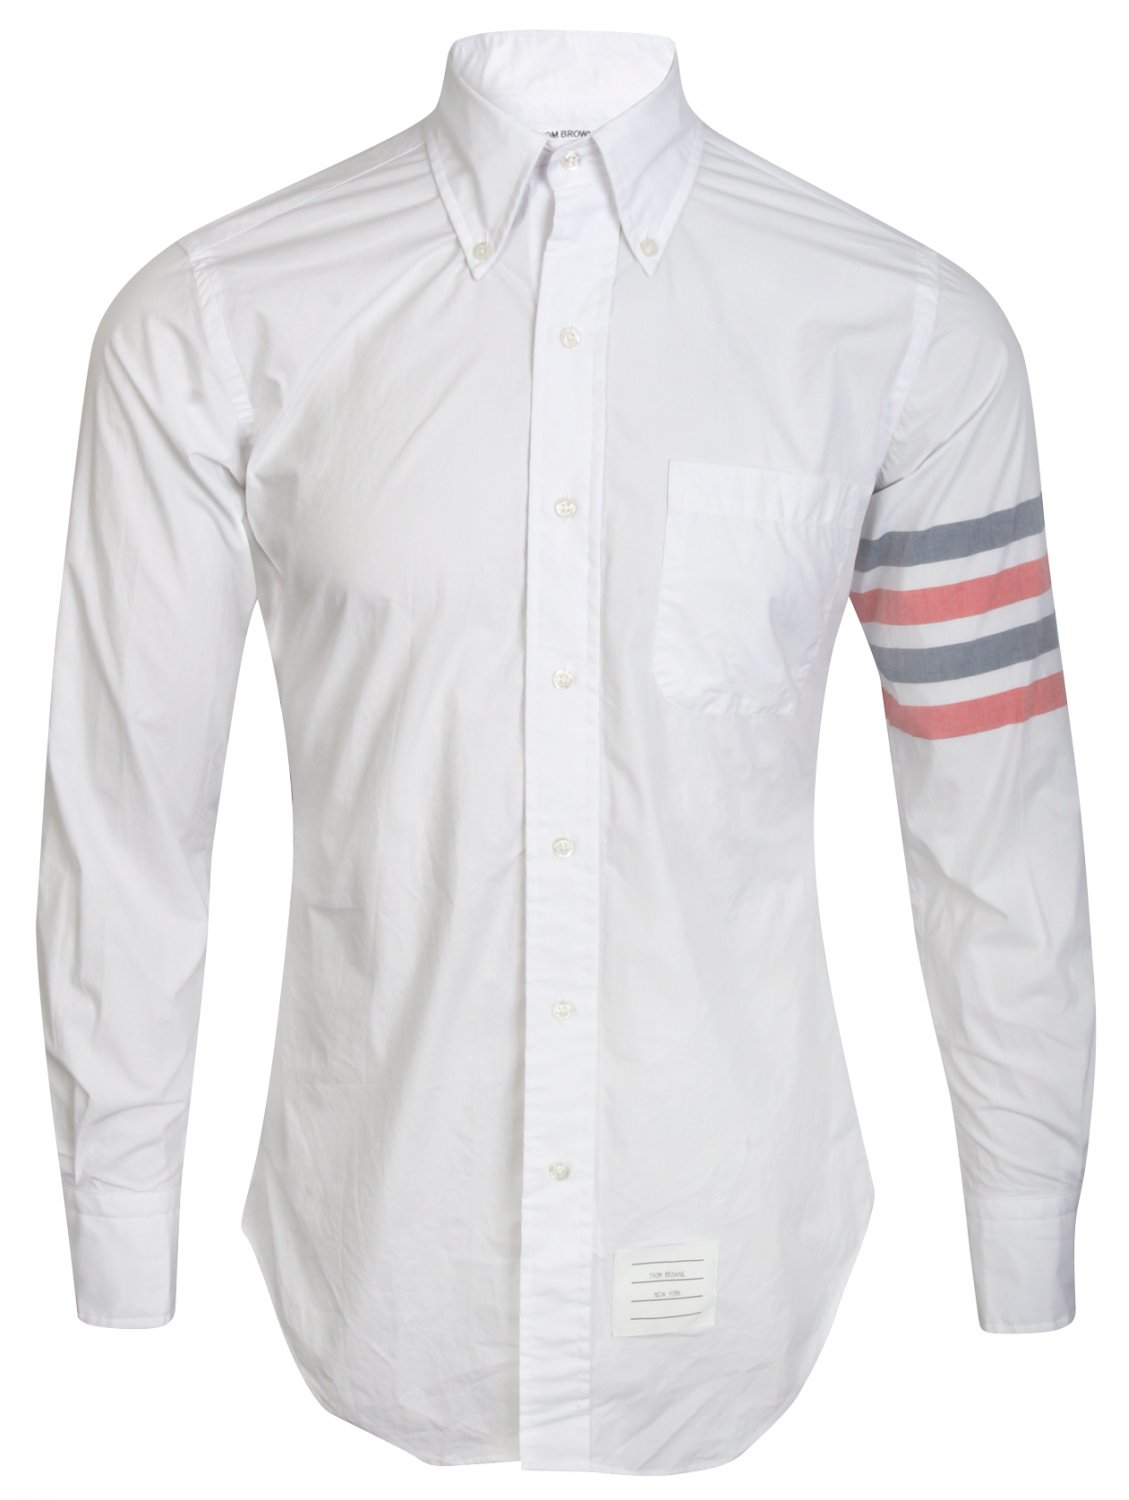 5b271b1909d Thom Browne White Button-down Oxford Shirt With Stripe Armband in ...